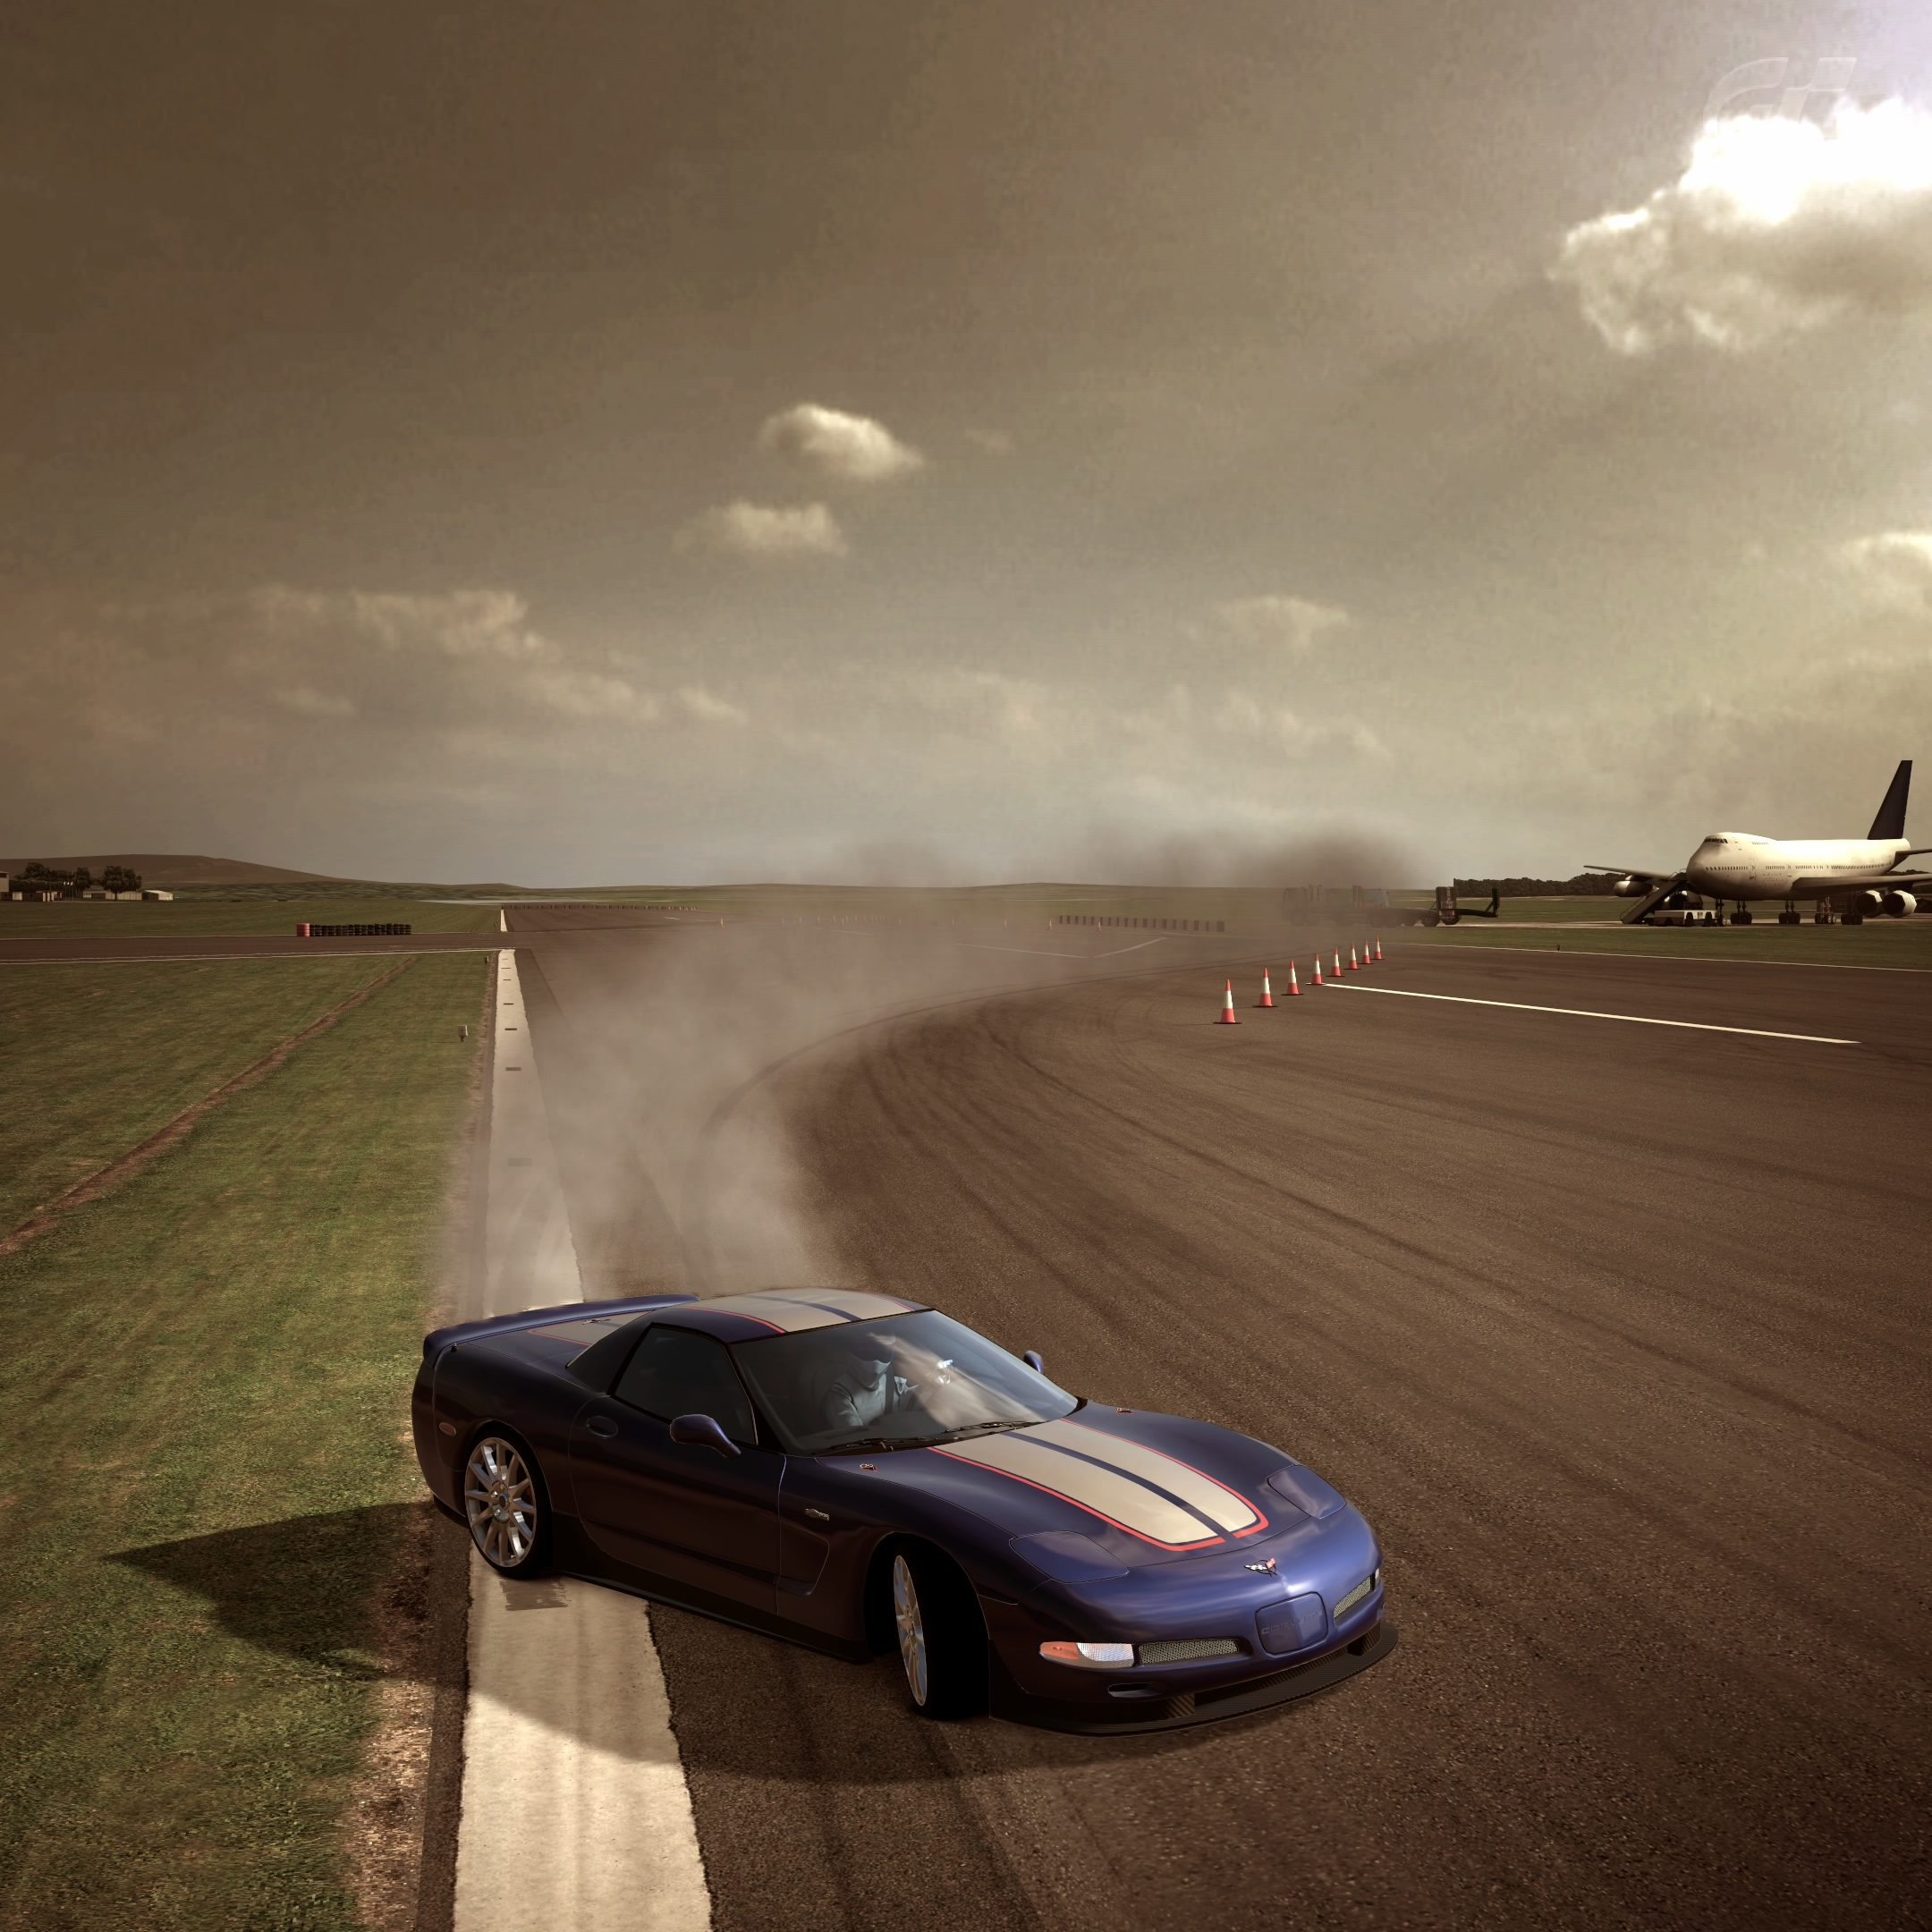 The Top Gear Test Track_1.jpg